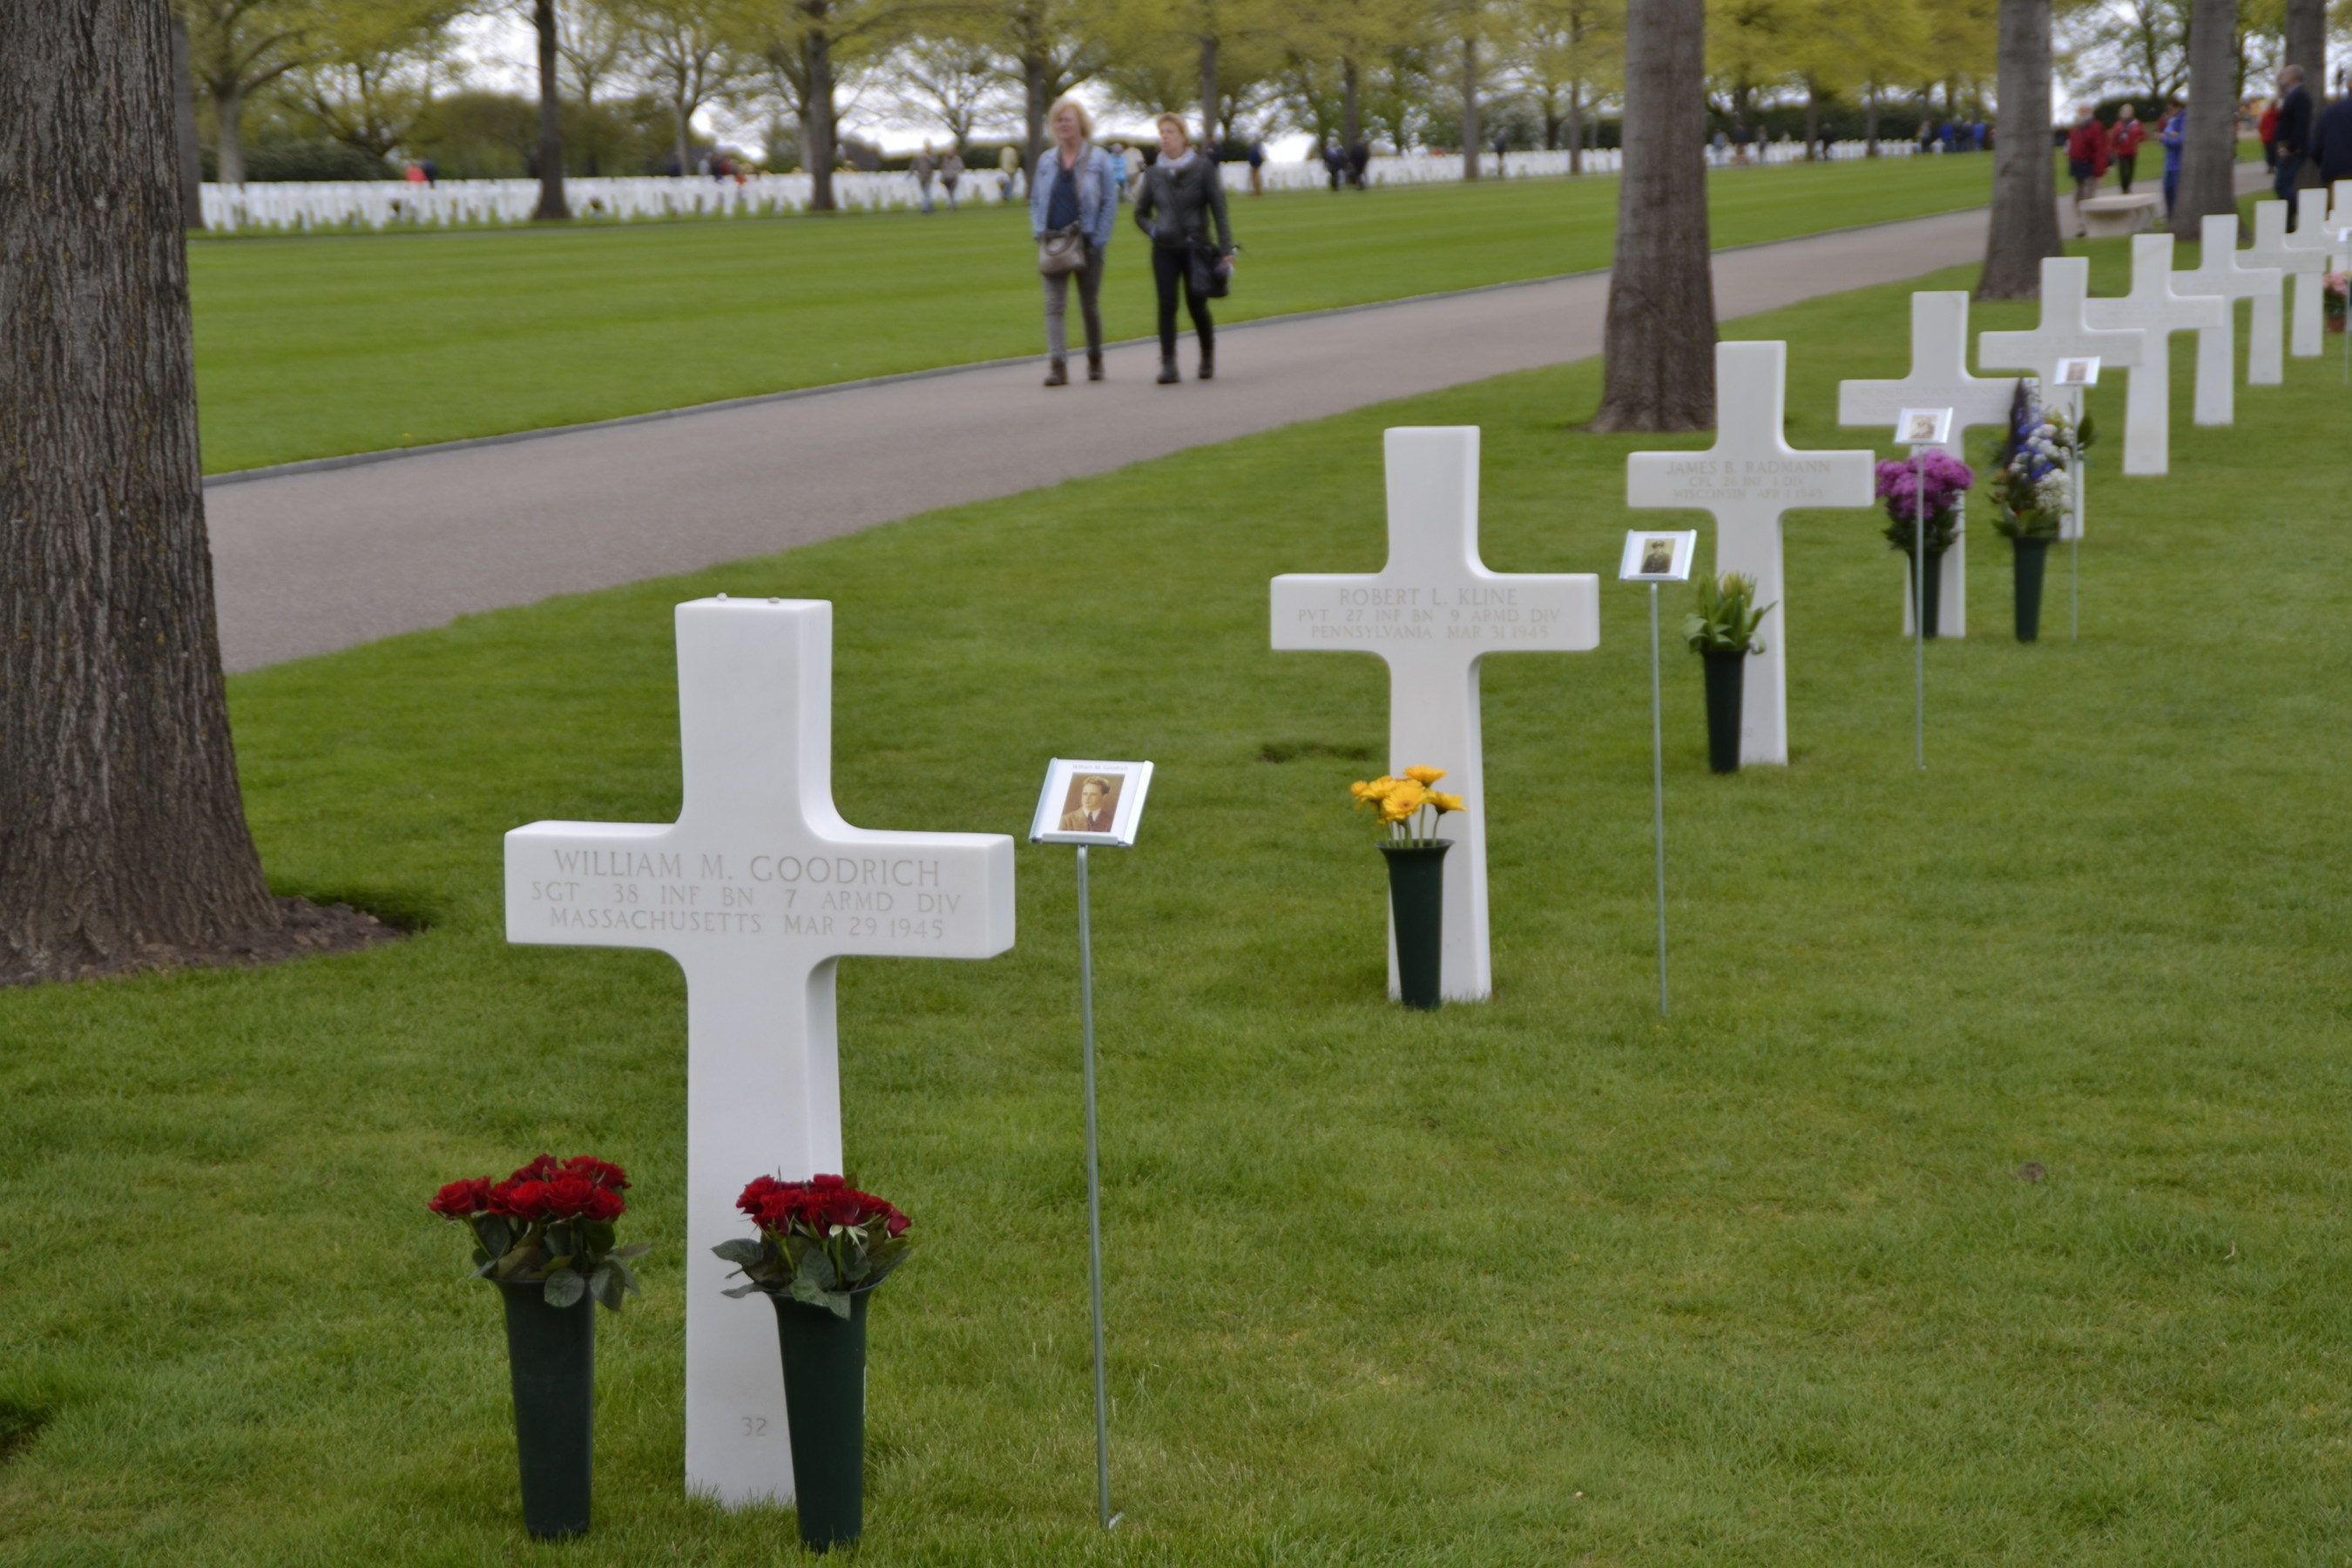 Personal photos of the soldiers were placed next to the headstones during the Faces of Margraten at Netherlands American Cemetery in 2015.